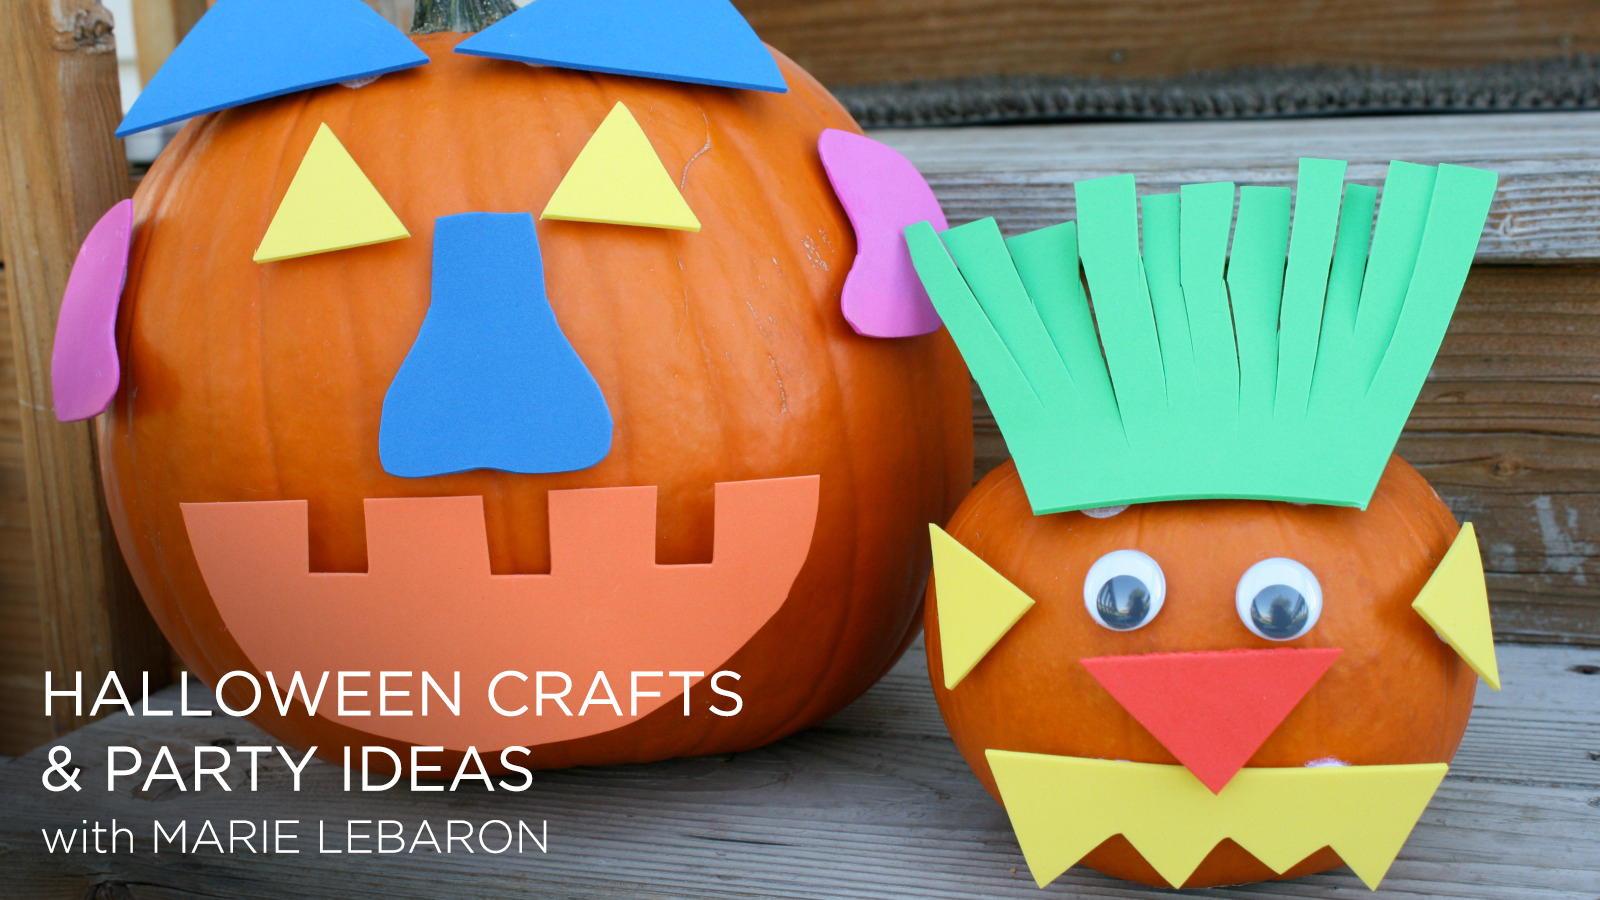 Copy of Marie_LeBron_Halloween_Crafts_and_Party_Ideas_text2_1600x900